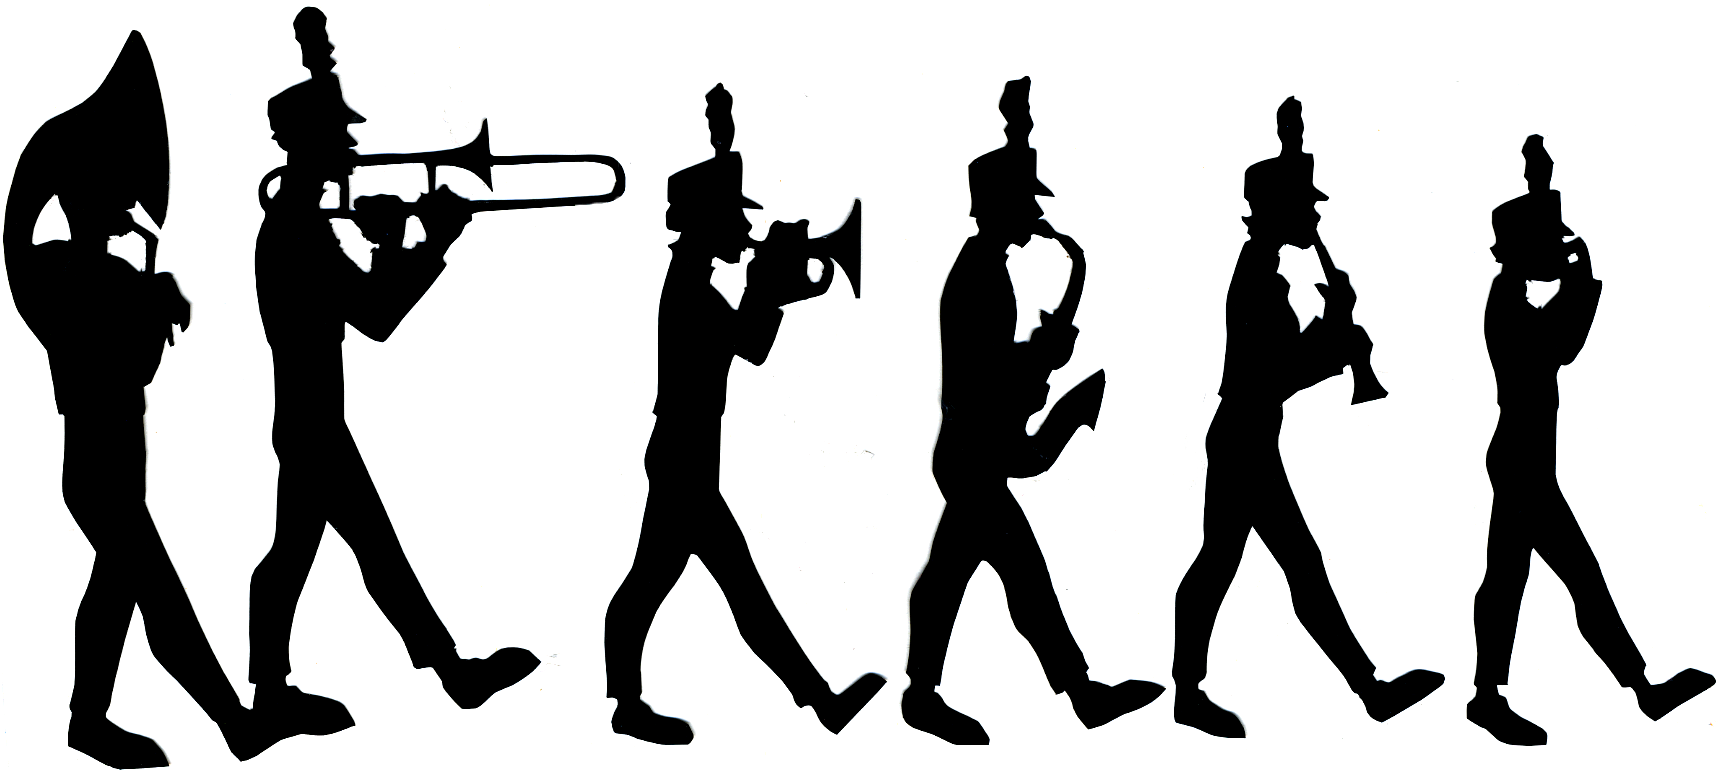 Silhouette at getdrawings com. Band clipart marching band